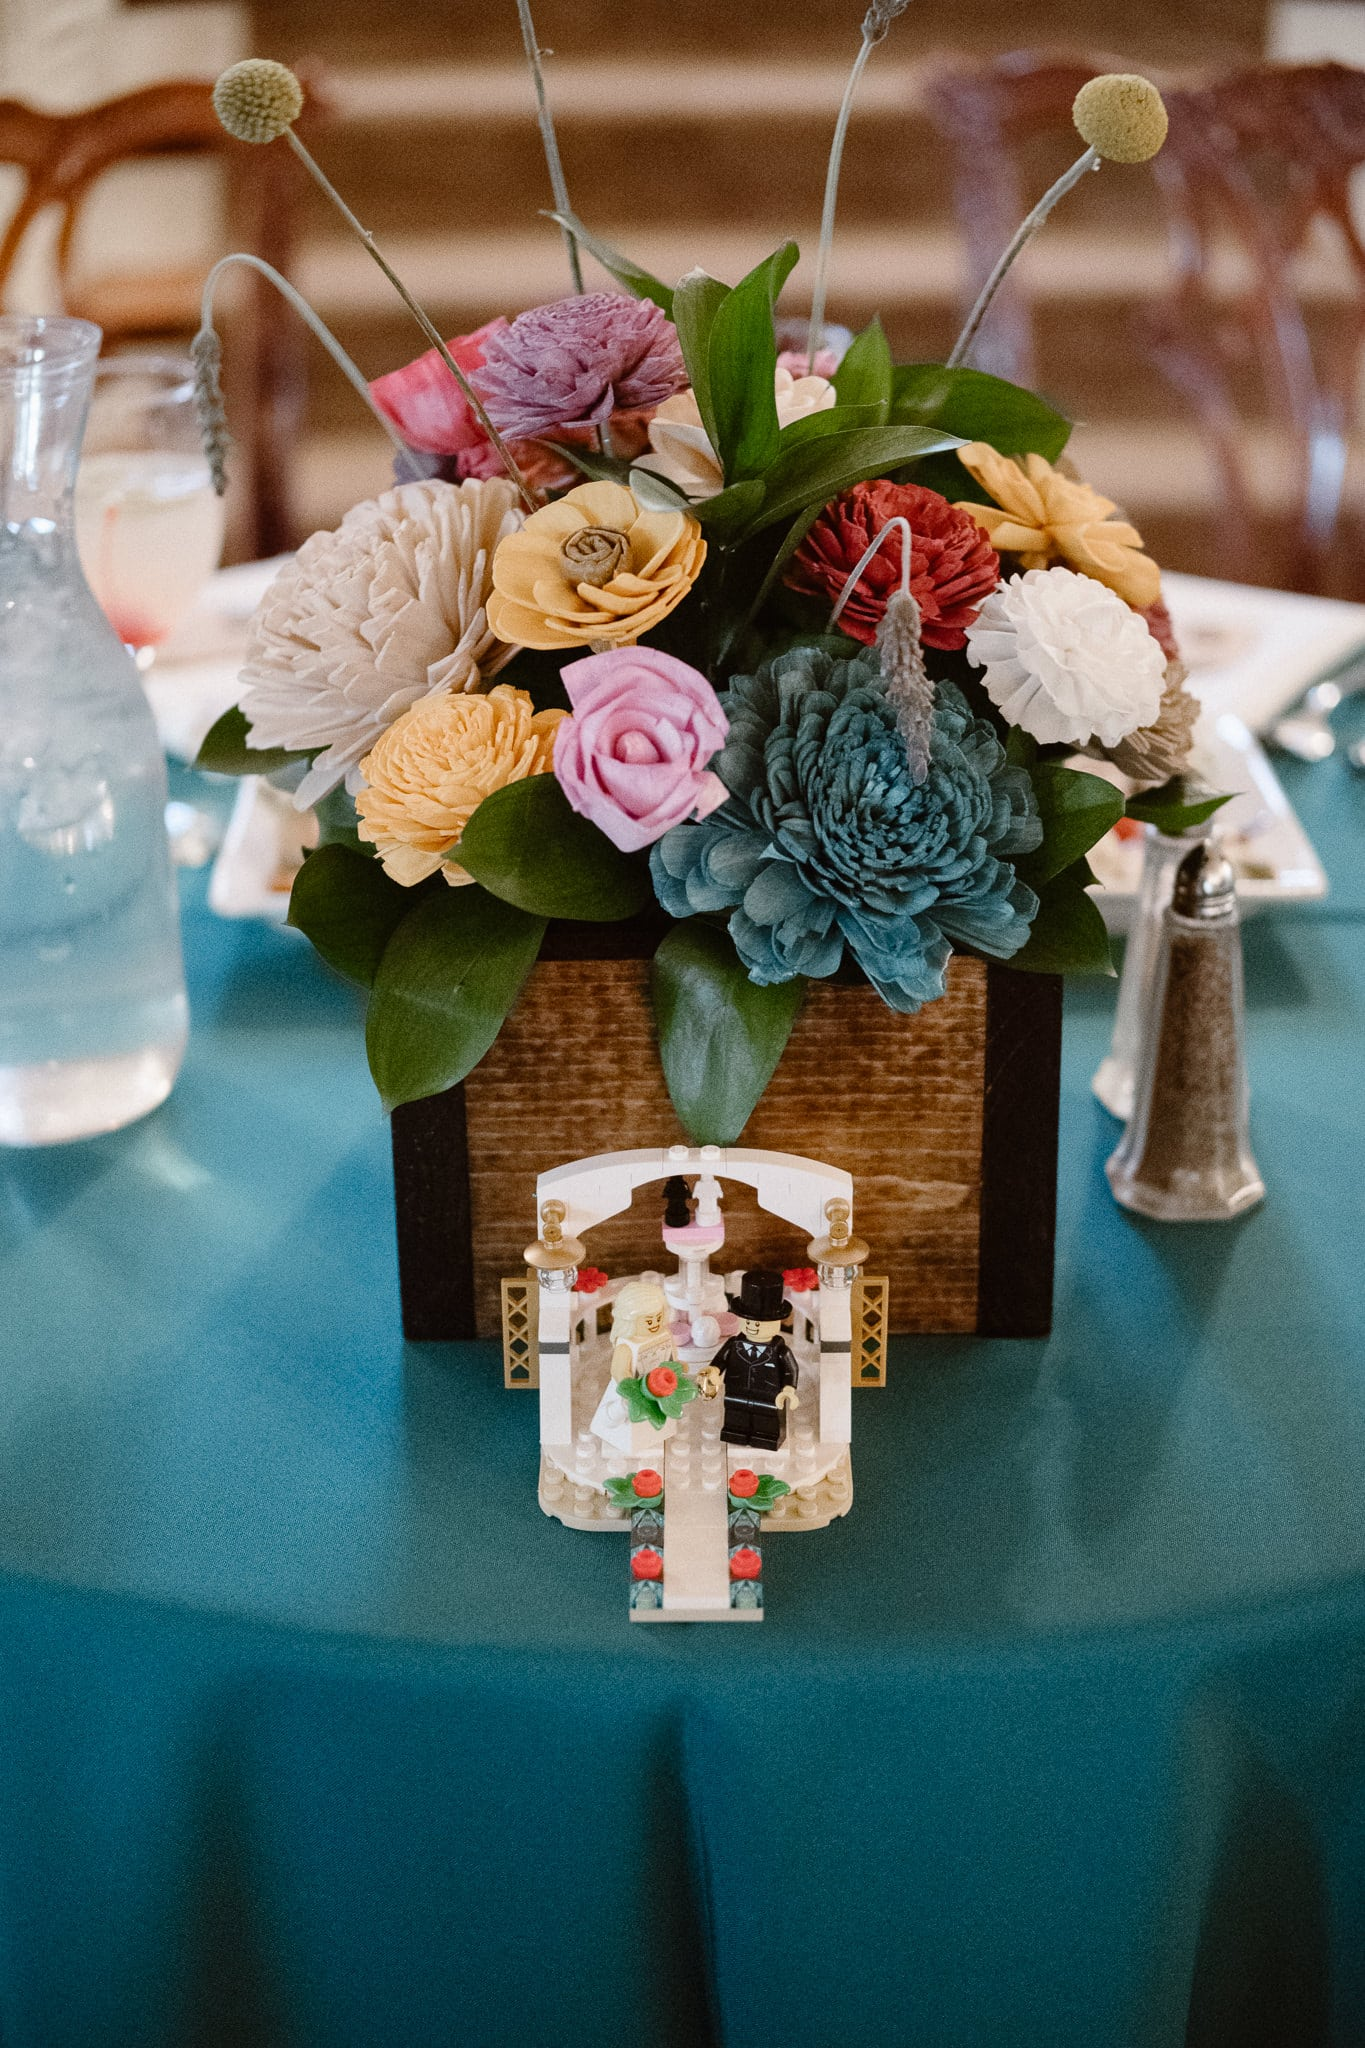 Grant Humphreys Mansion Wedding Photographer, Denver wedding photographer, Colorado wedding photographer, reception venue, wedding reception decor, wedding lego figure